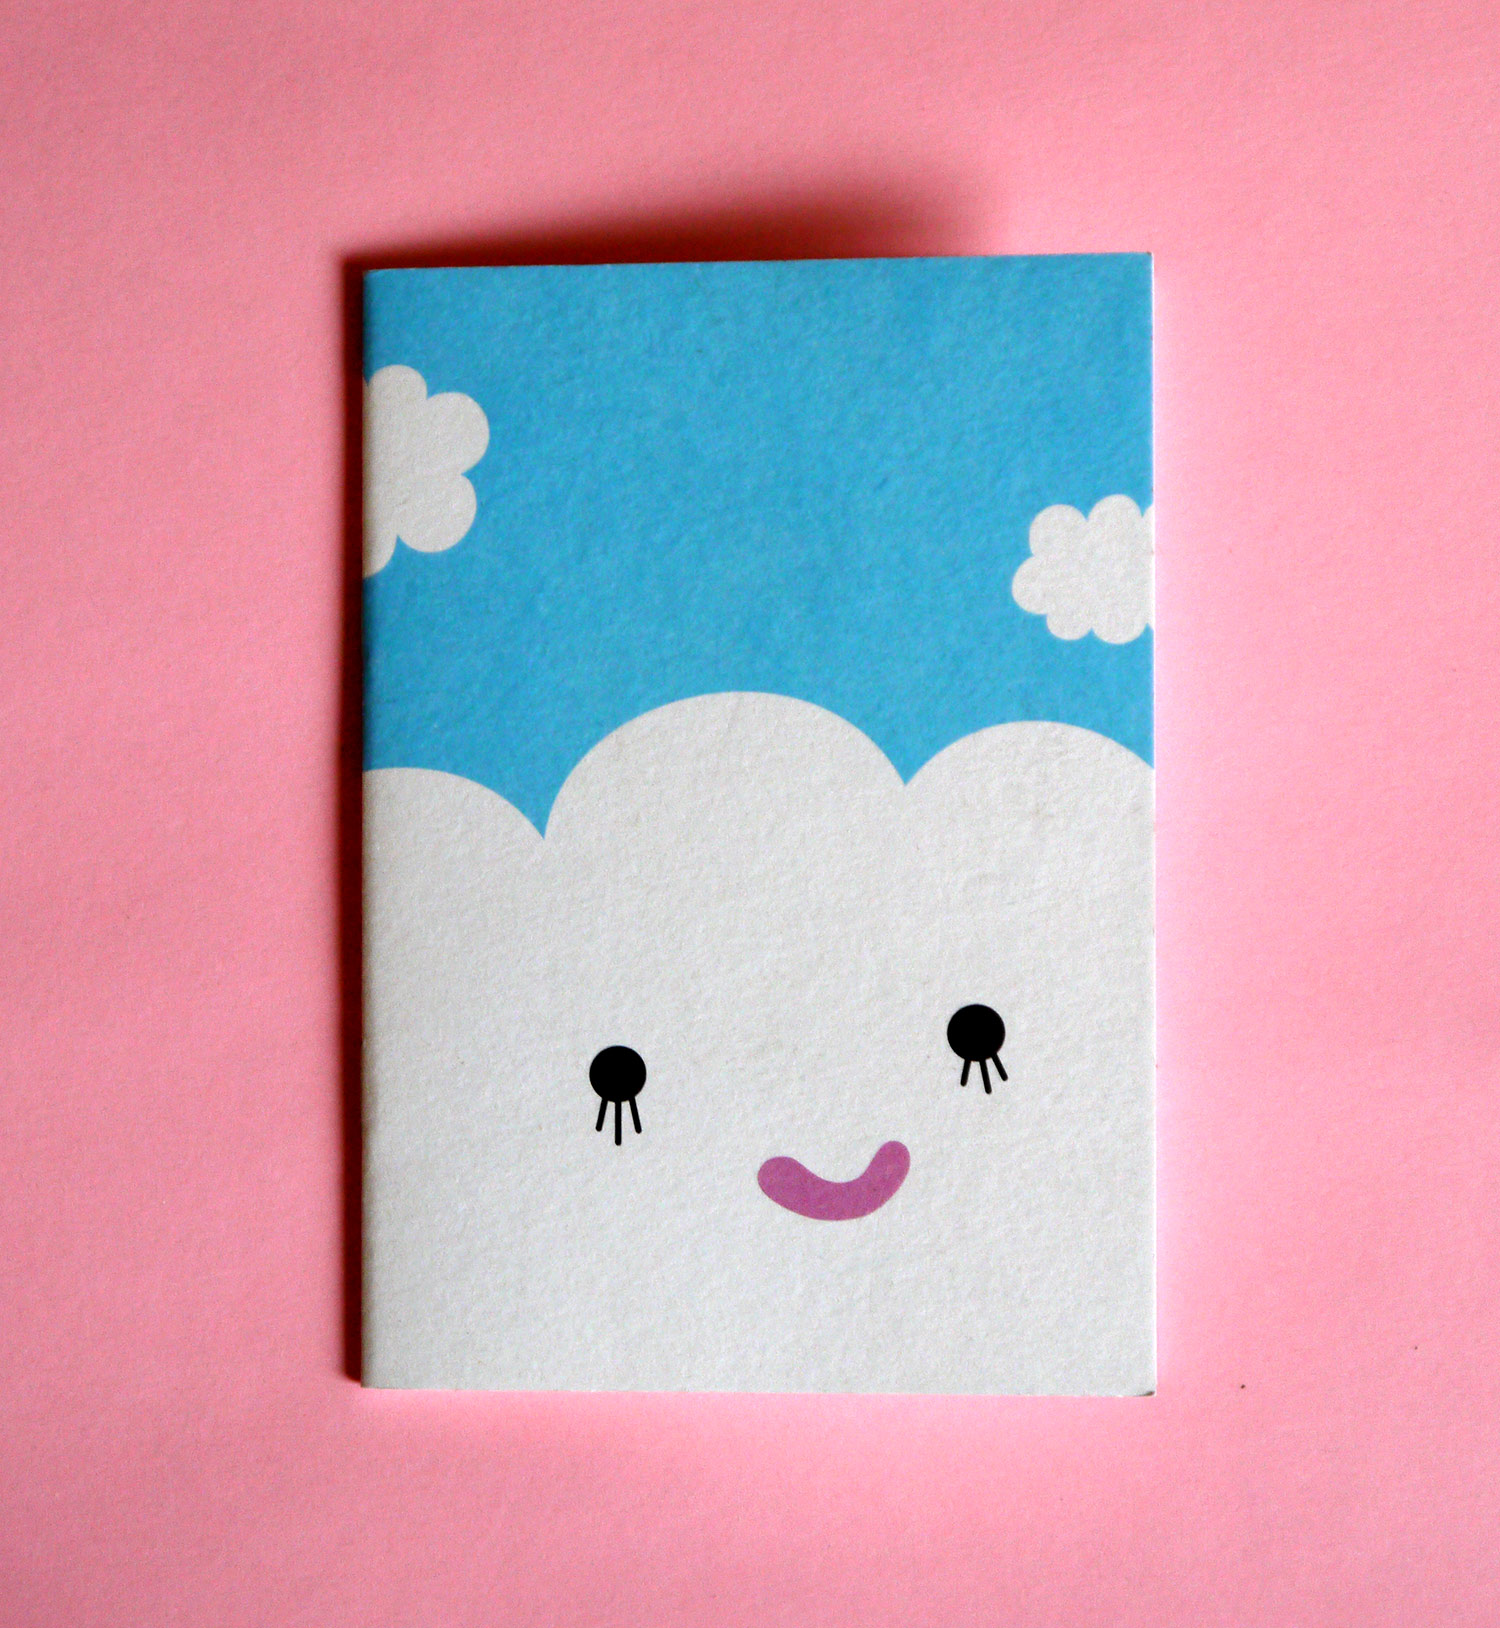 Cloudy with a chance of cute: Noodoll notebook